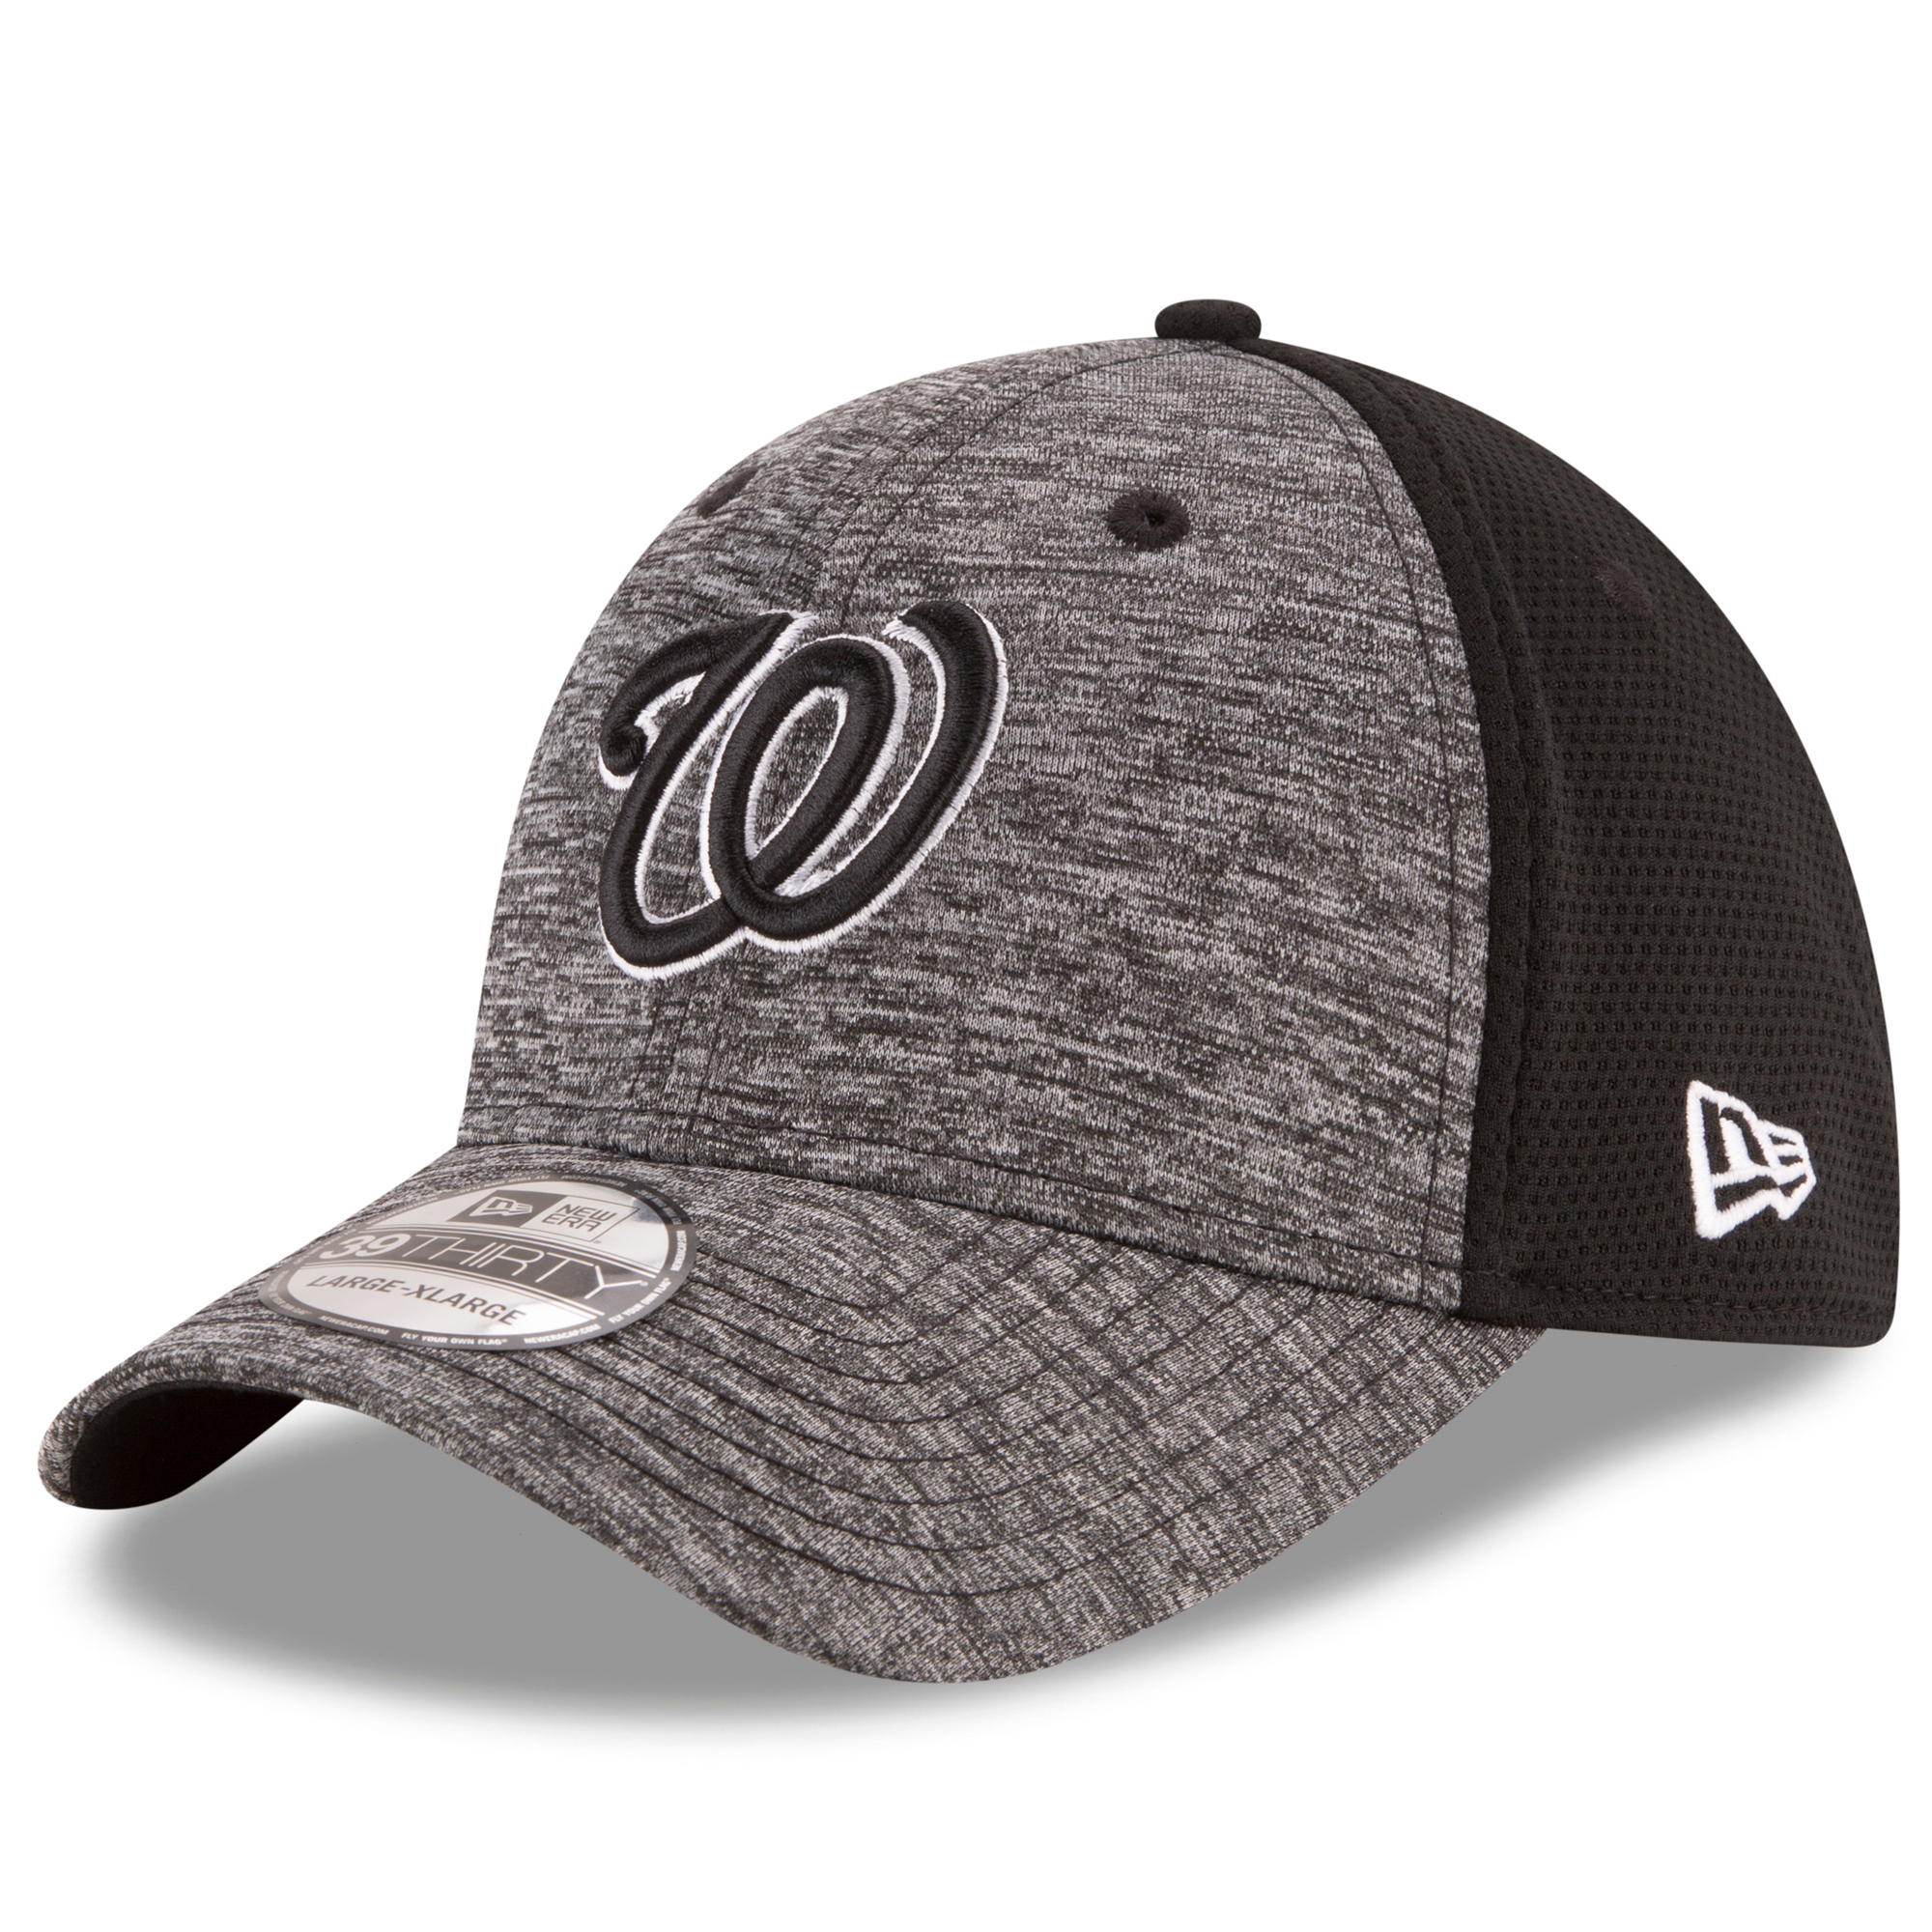 Washington Nationals New Era Black Shadowed Team 39THIRTY Flex Hat - Heather Grey, Black